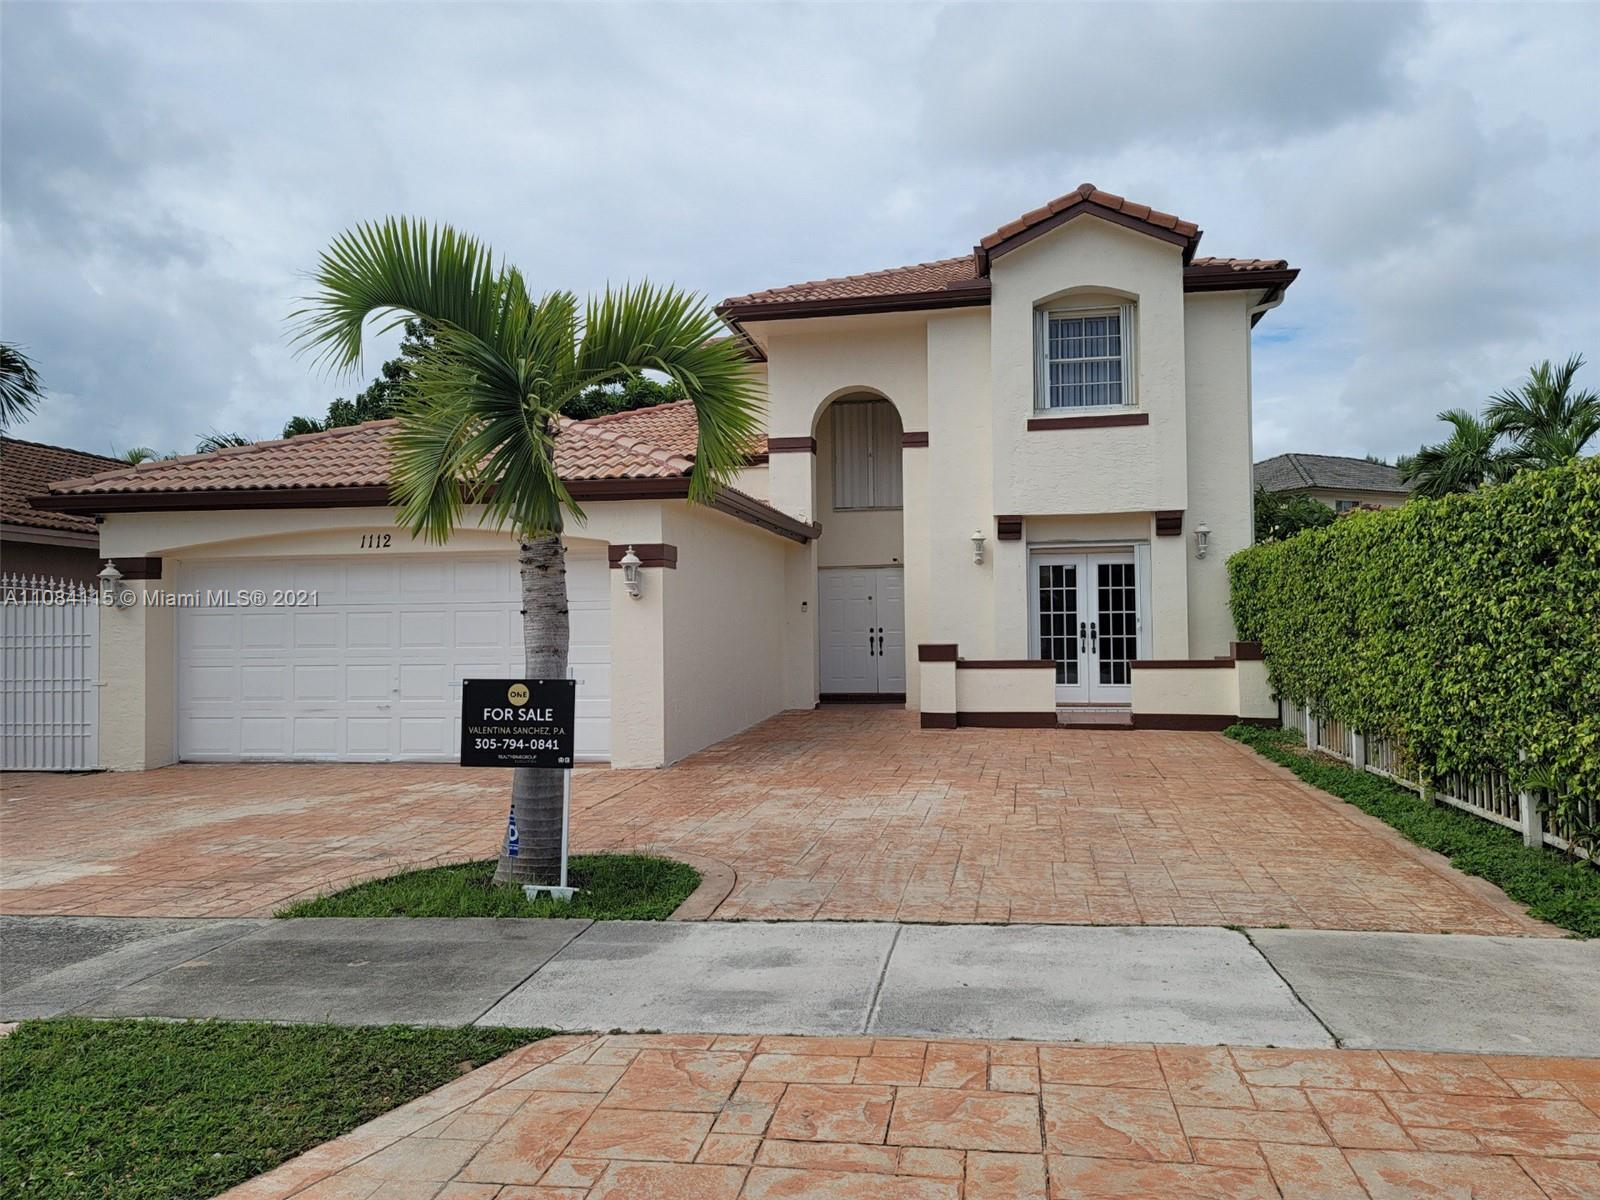 Single Family Home,For Sale,1112 NW 129th Ct, Miami, Florida 33182,Brickell,realty,broker,condos near me